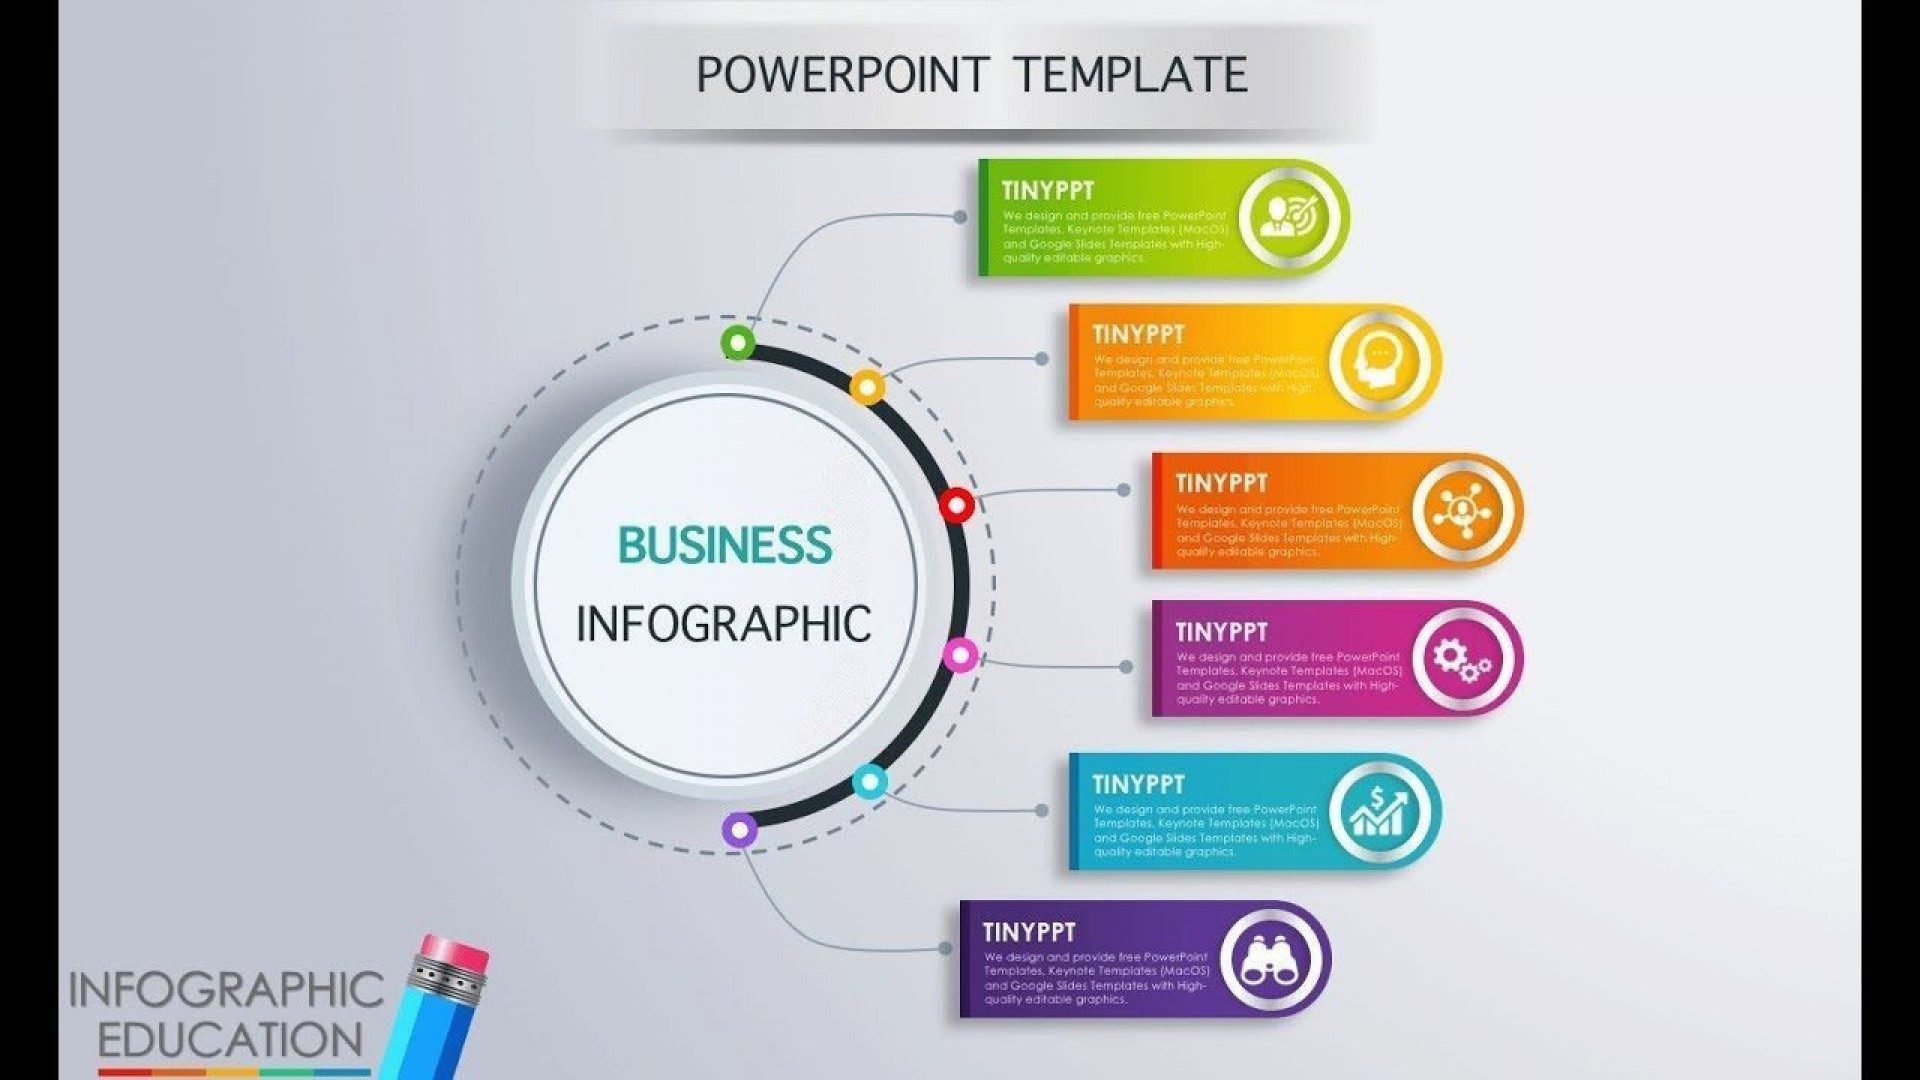 010 Magnificent Free 3d Animated Powerpoint Template Download Picture  2017 2016 Tinyppt1920